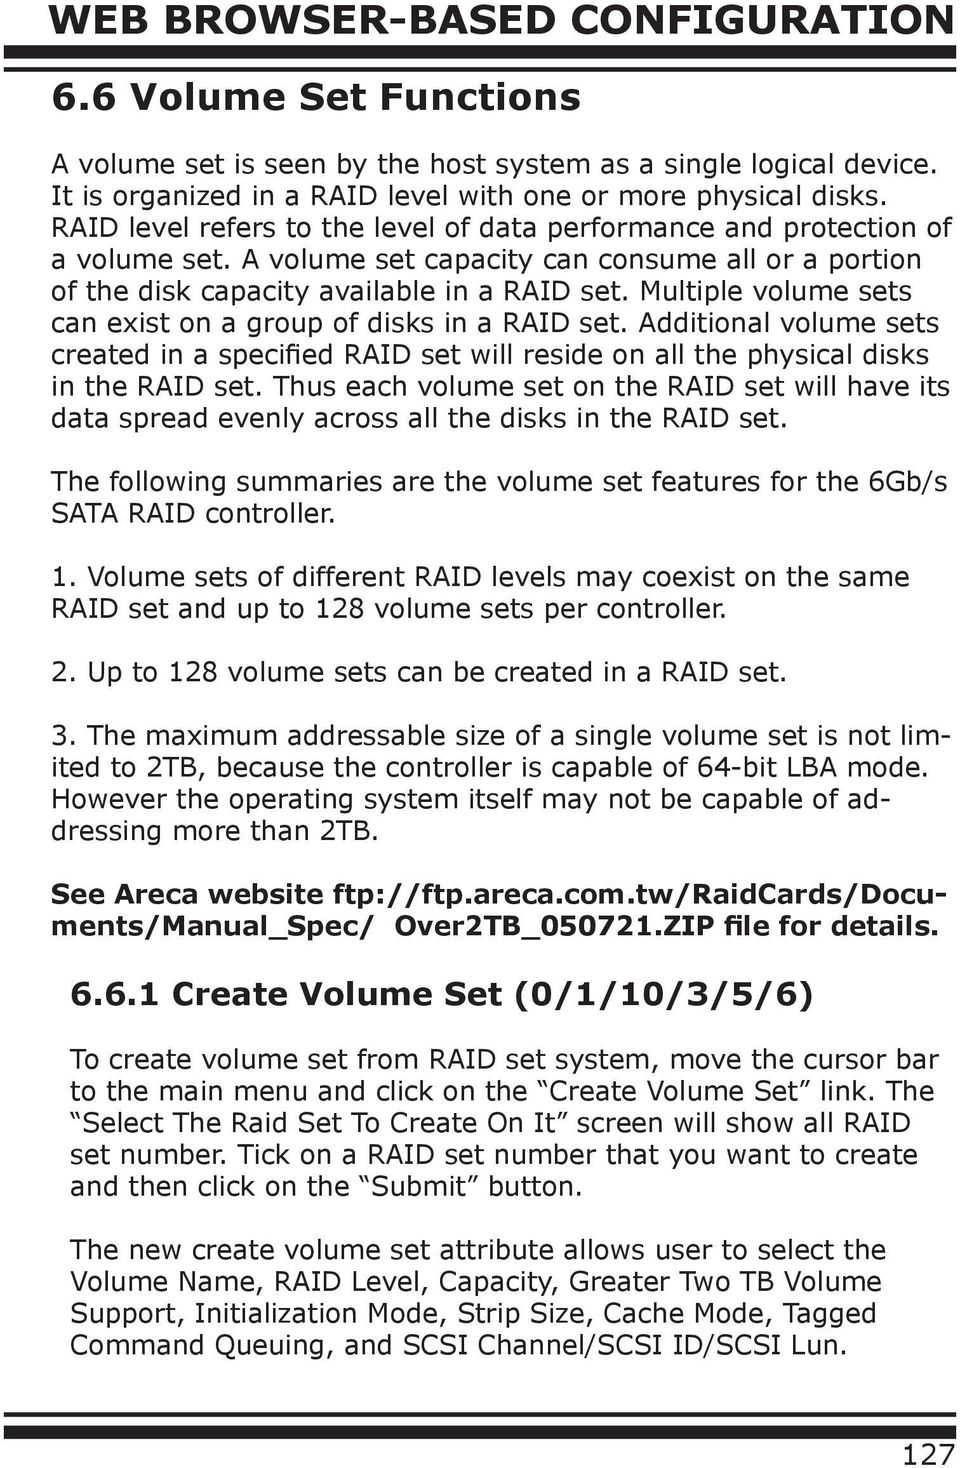 Multiple volume sets can exist on a group of disks in a RAID set. Additional volume sets created in a specified RAID set will reside on all the physical disks in the RAID set.